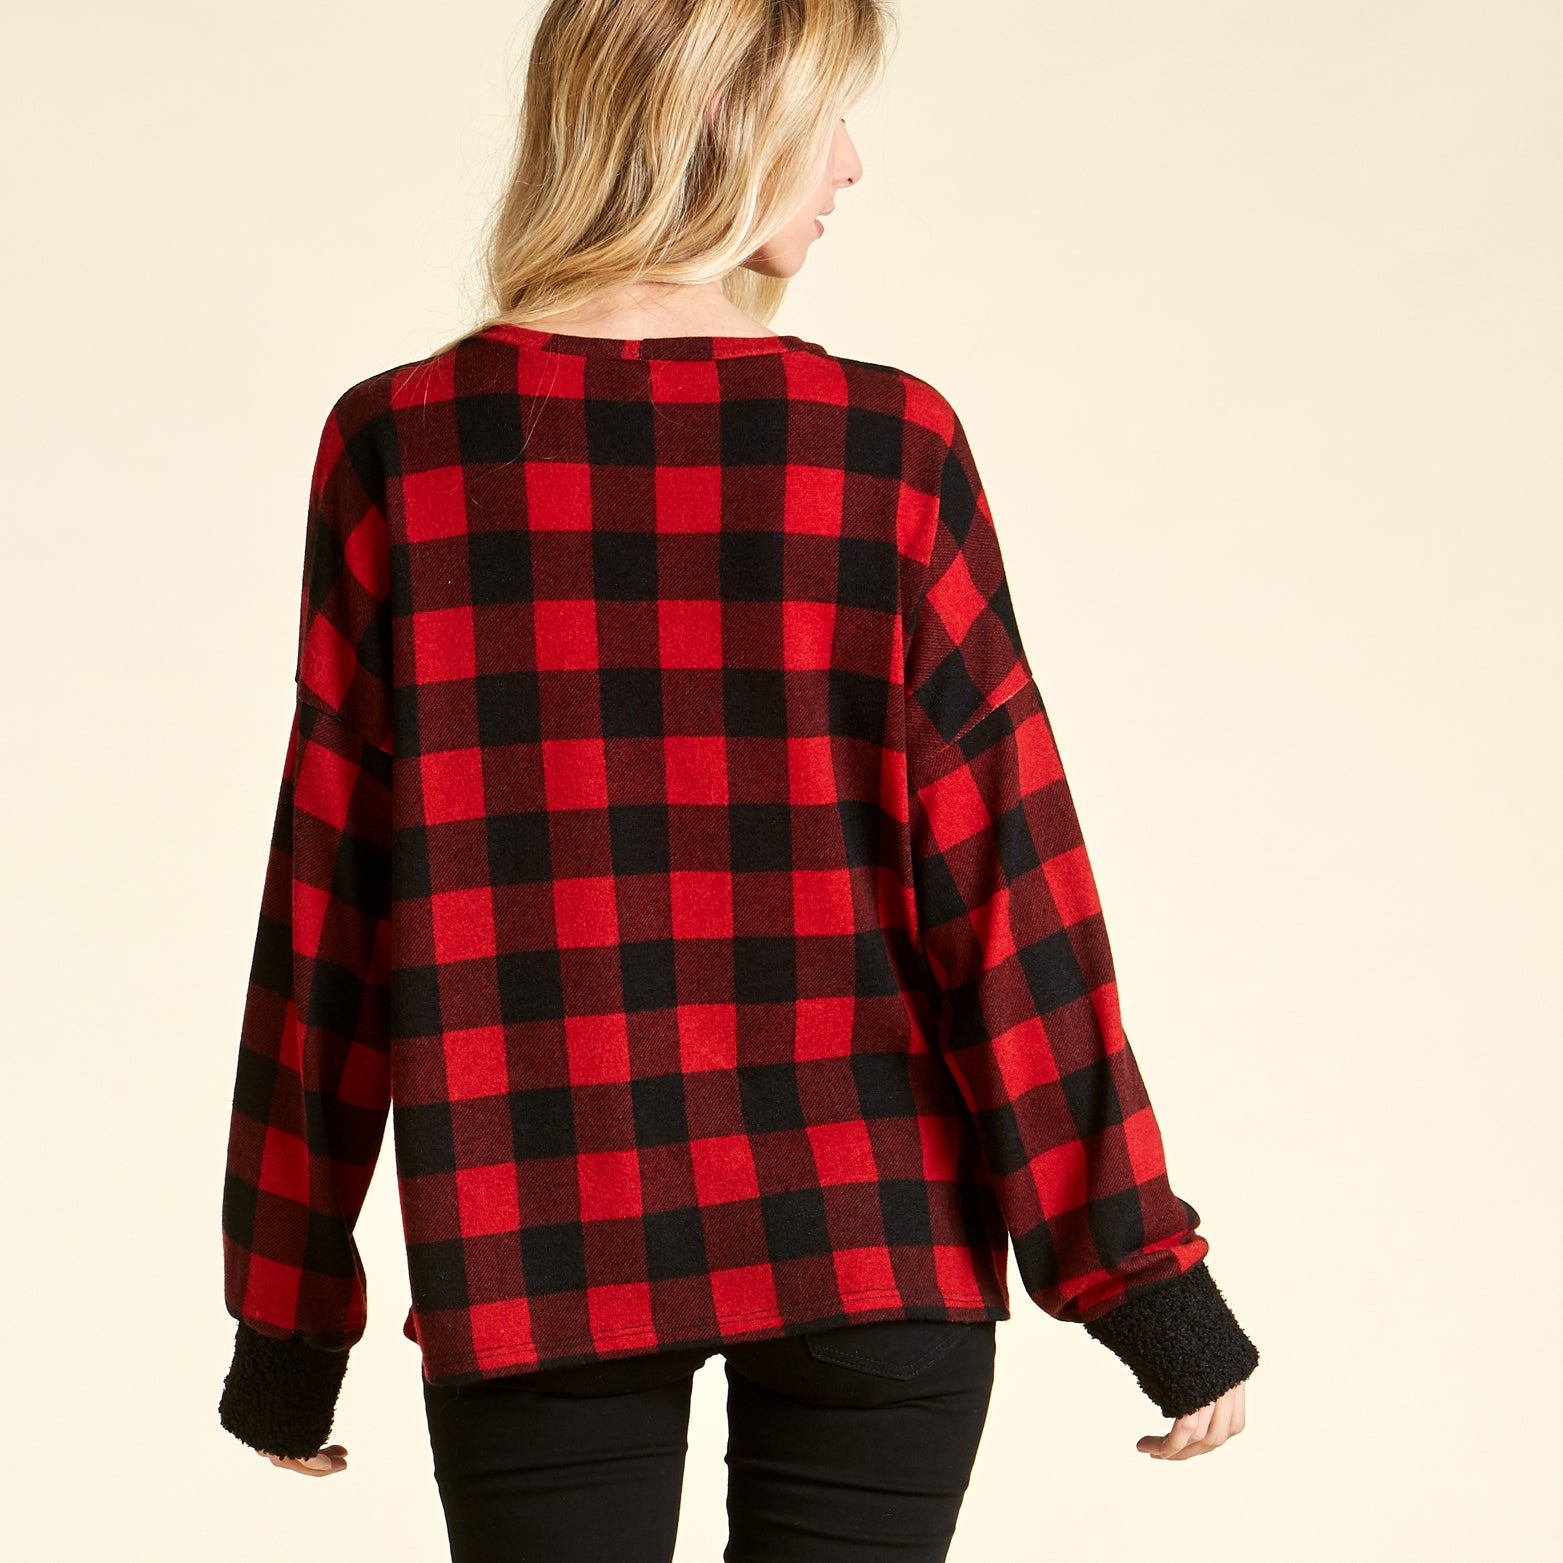 Cozy Plaid Sweater - Love, Kuza